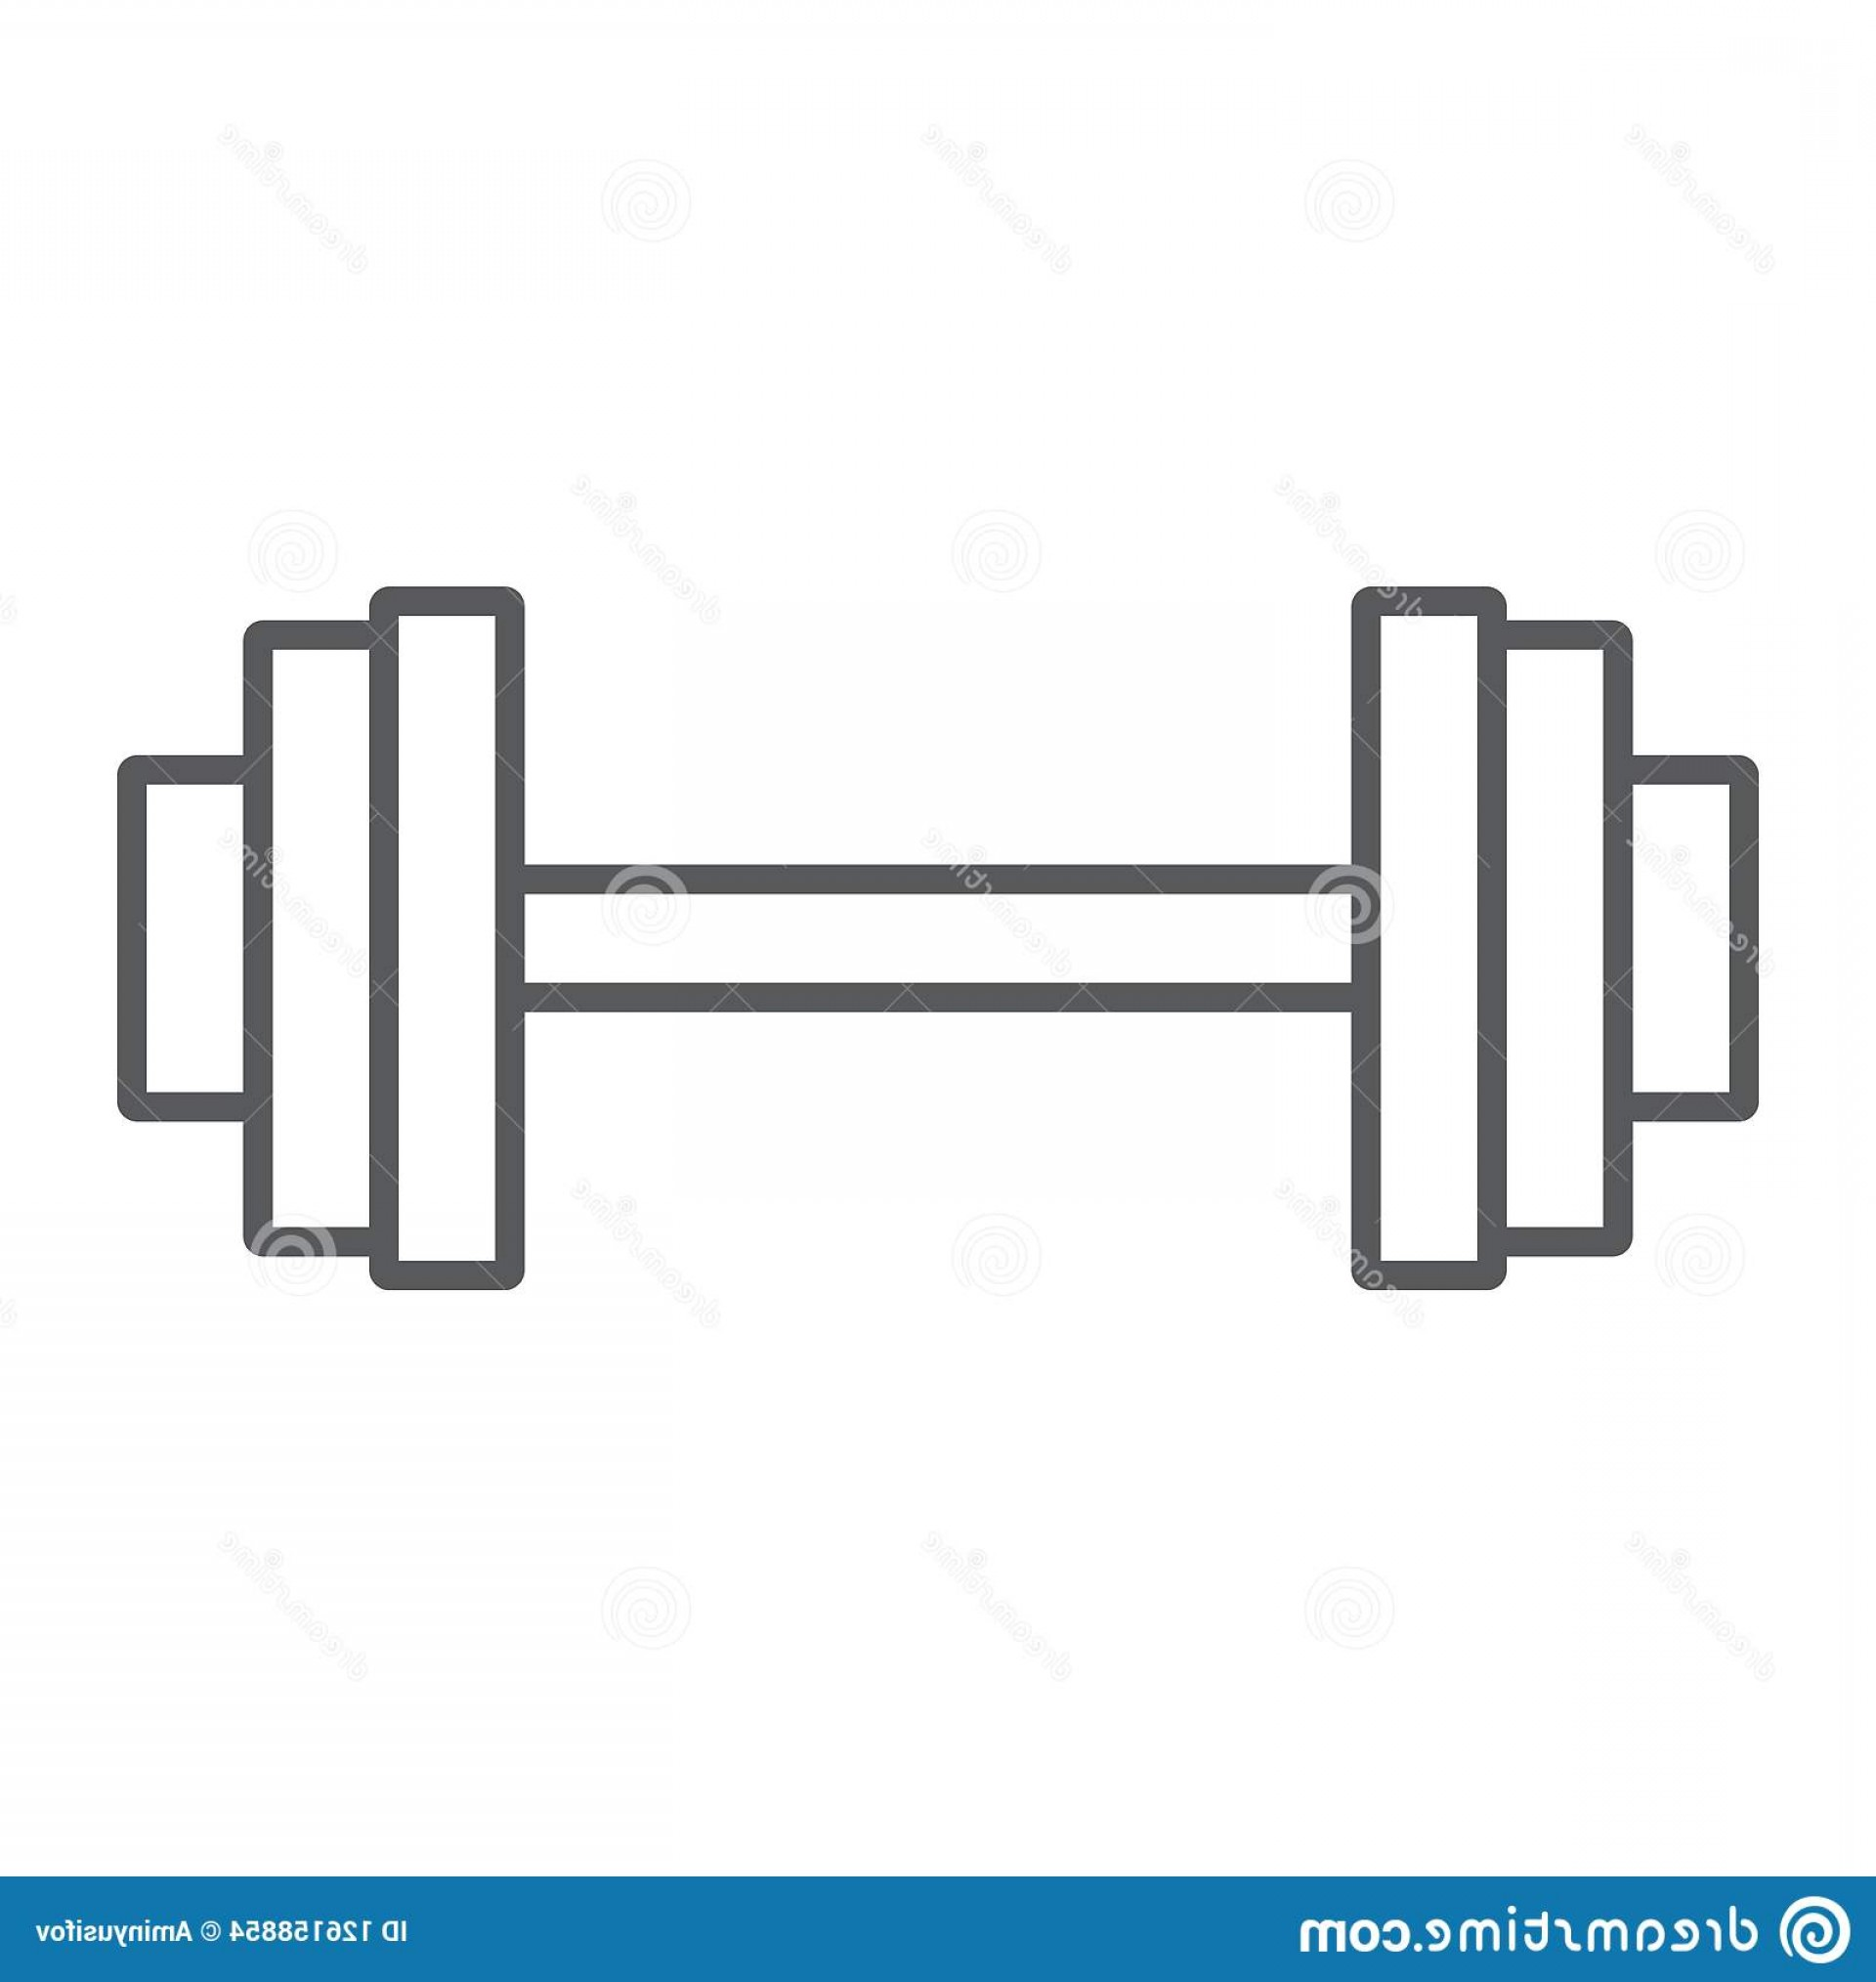 Weight Lifting Vector Graphics: Weightlifting Thin Line Icon Gym Sport Weightlifting Thin Line Icon Gym Sport Barbell Sign Vector Graphics Linear Image